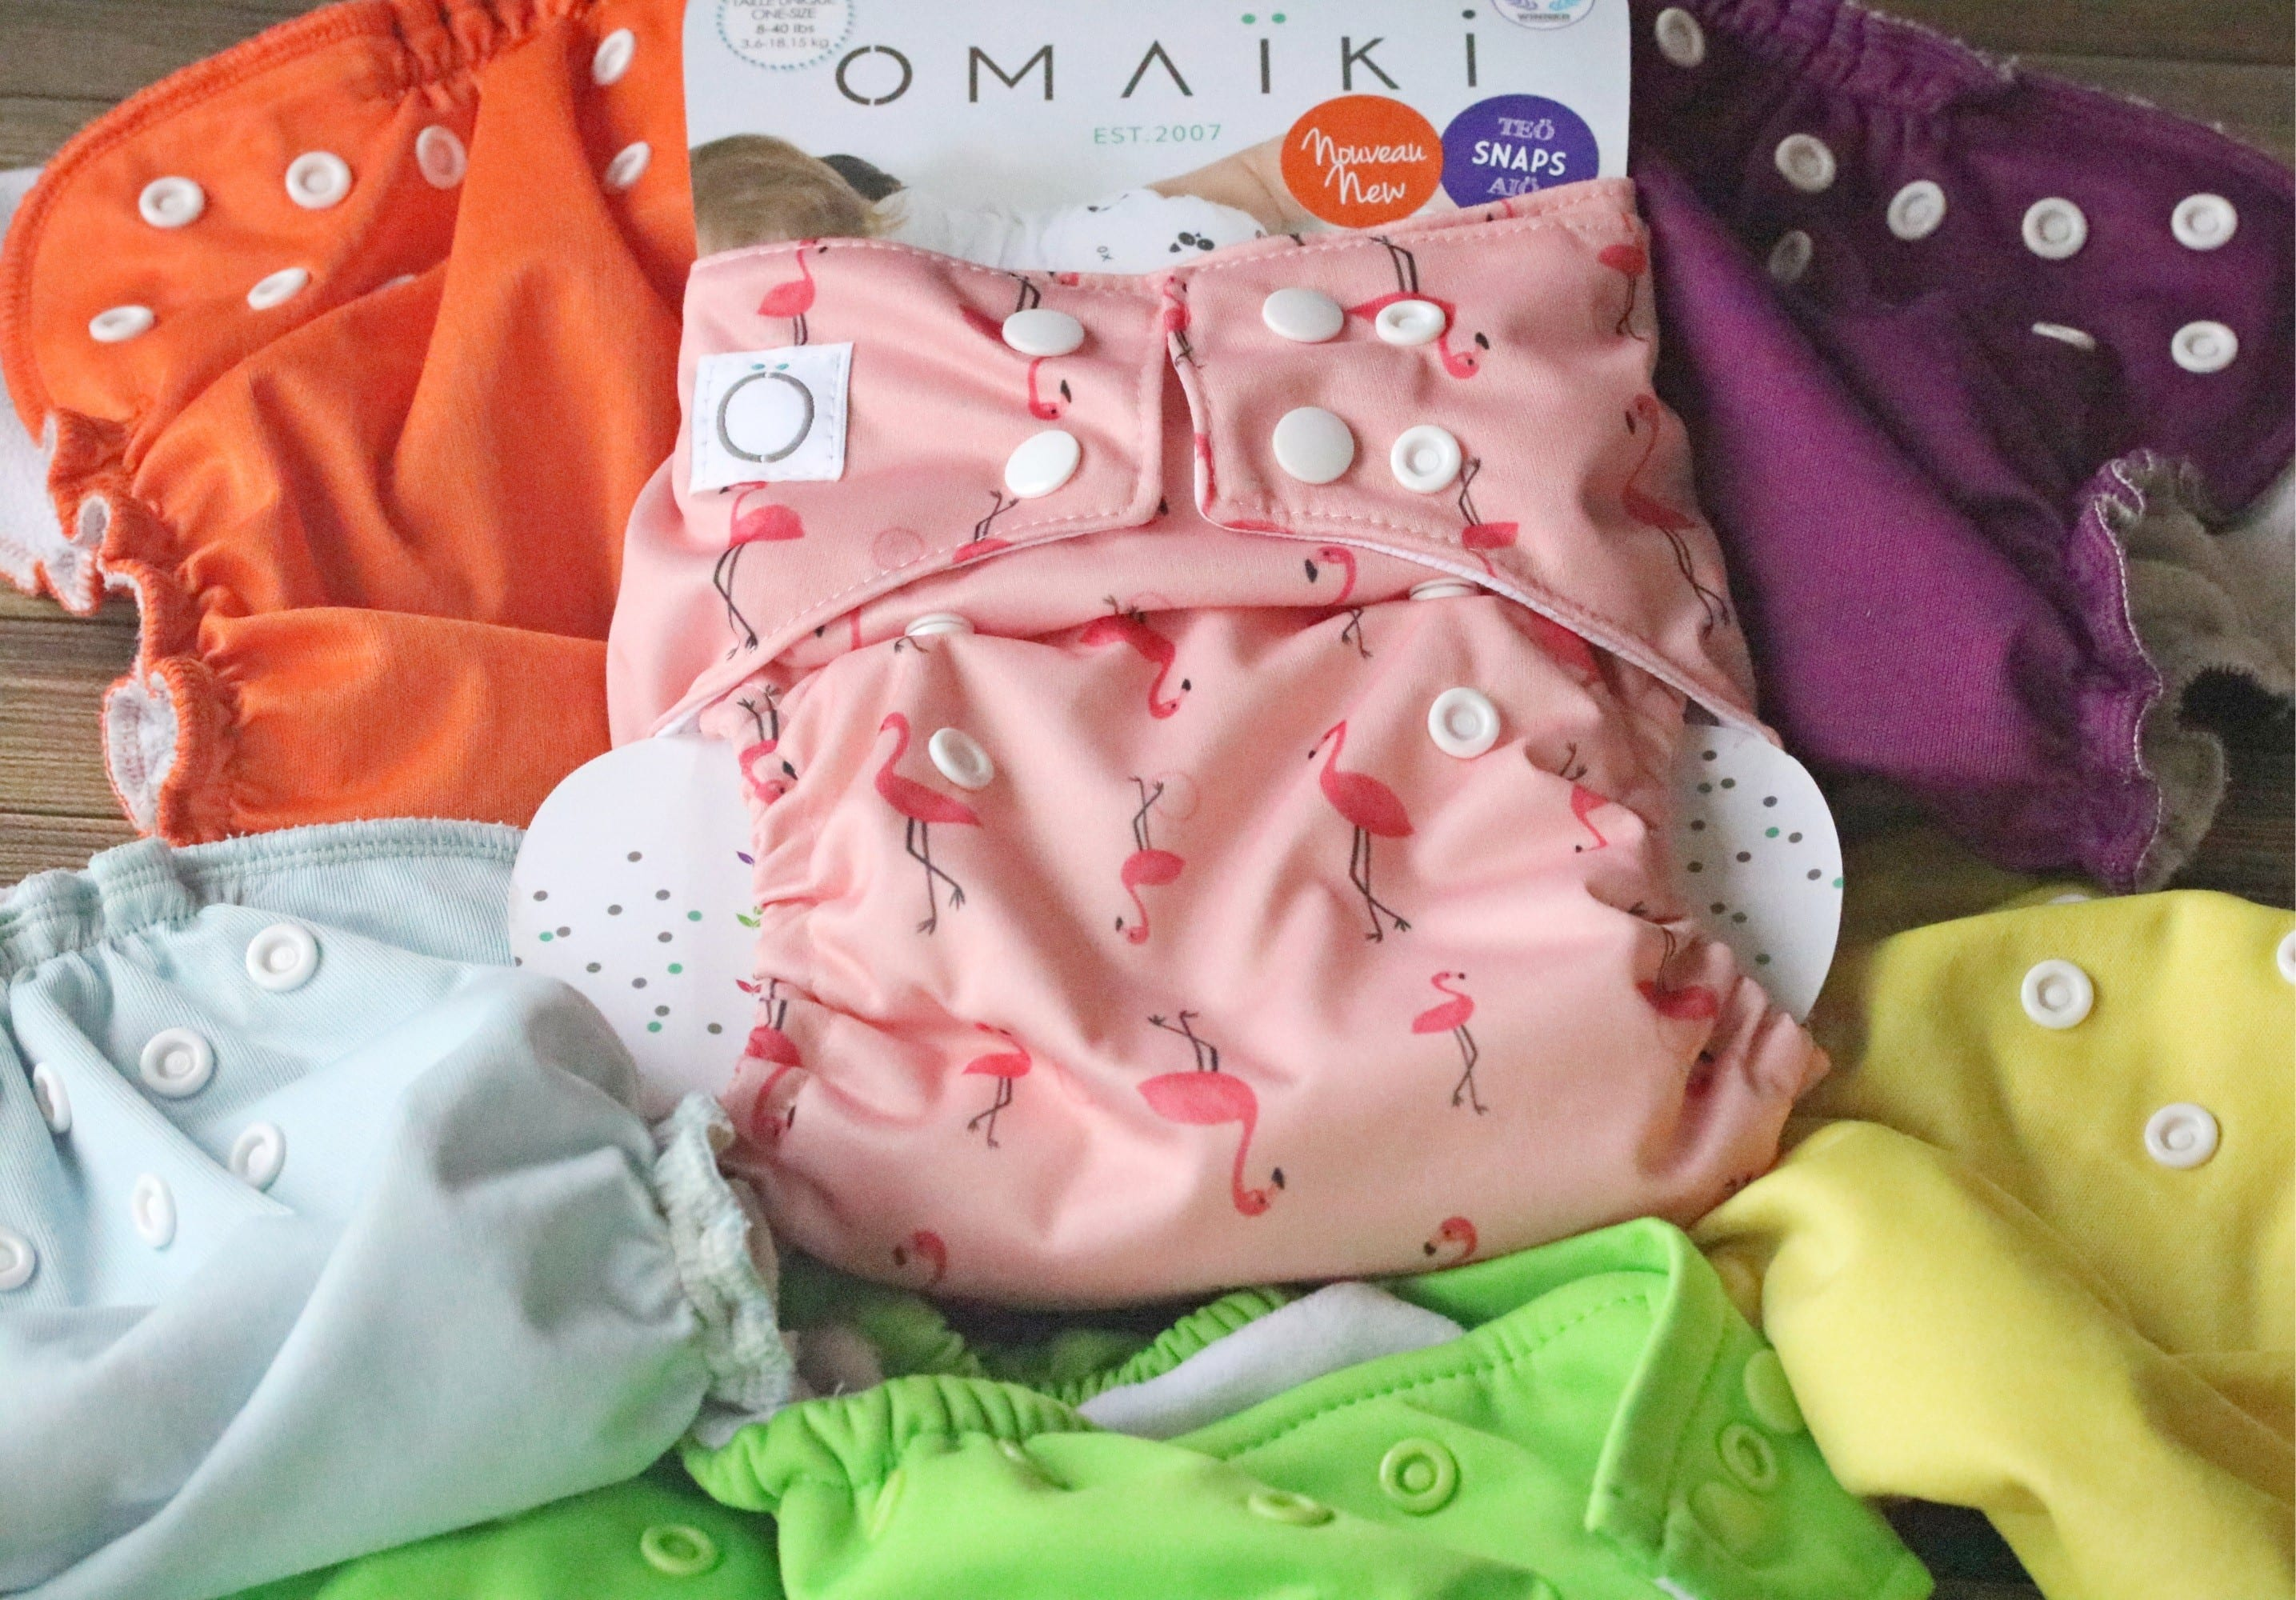 Multiple diapers covers in different colors piled on top of one another